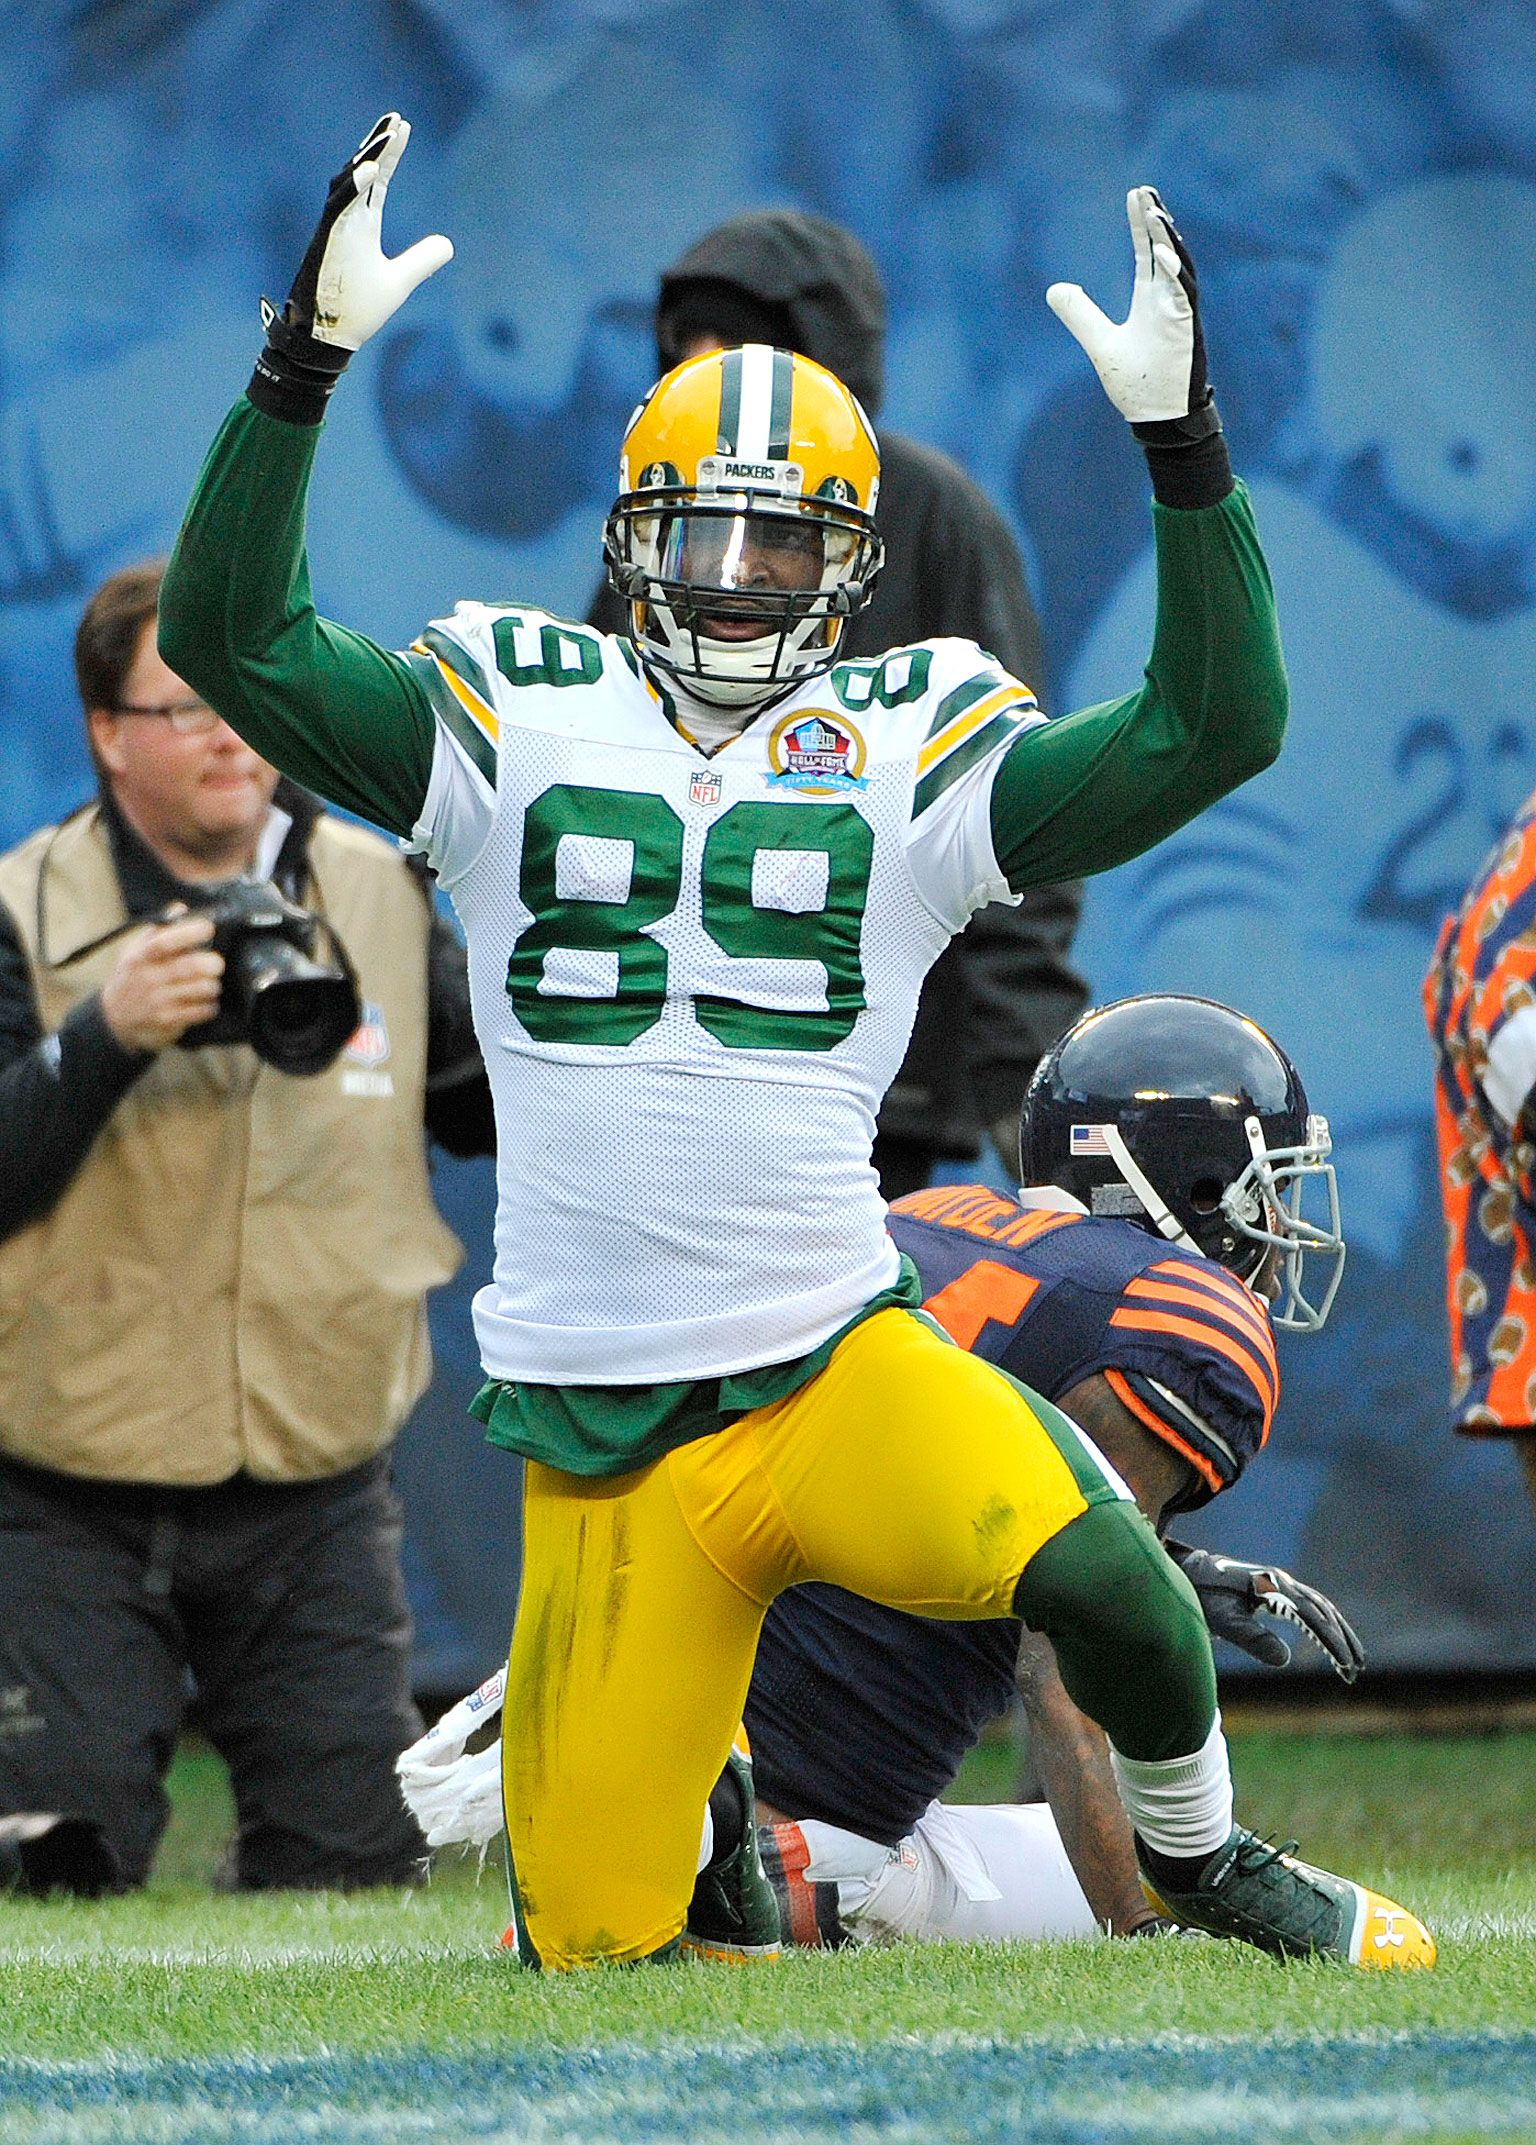 James Jones Green Bay Packers Team Green Bay Packers Fans Green Bay Packers Football